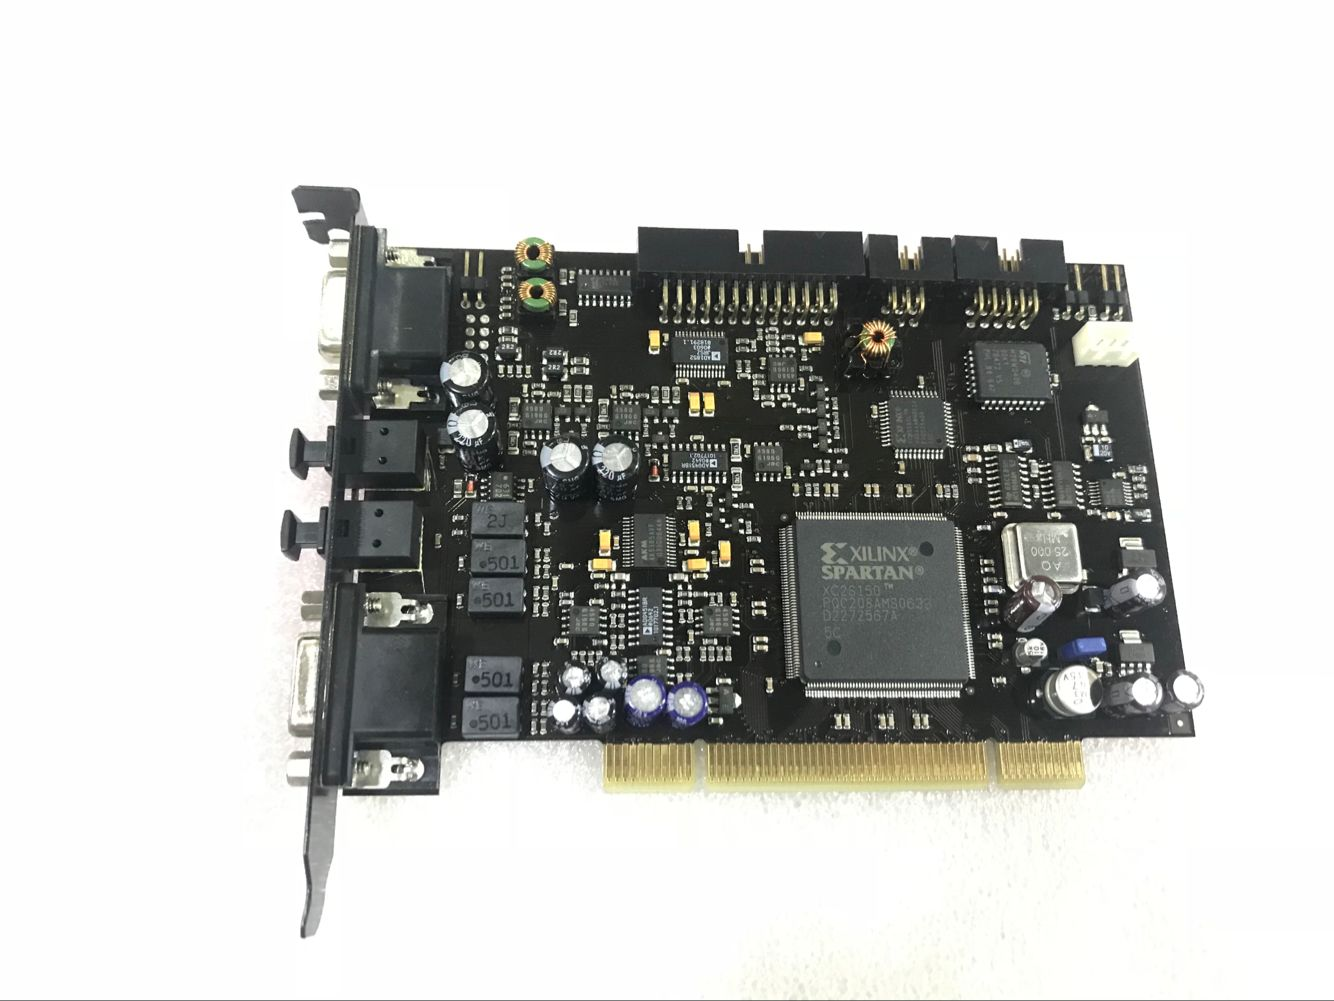 Original RME HDSP 9632 PCI Sound Card Built-in Audio Interface 24Bit/192kHz Professional Sound Card Audio Card